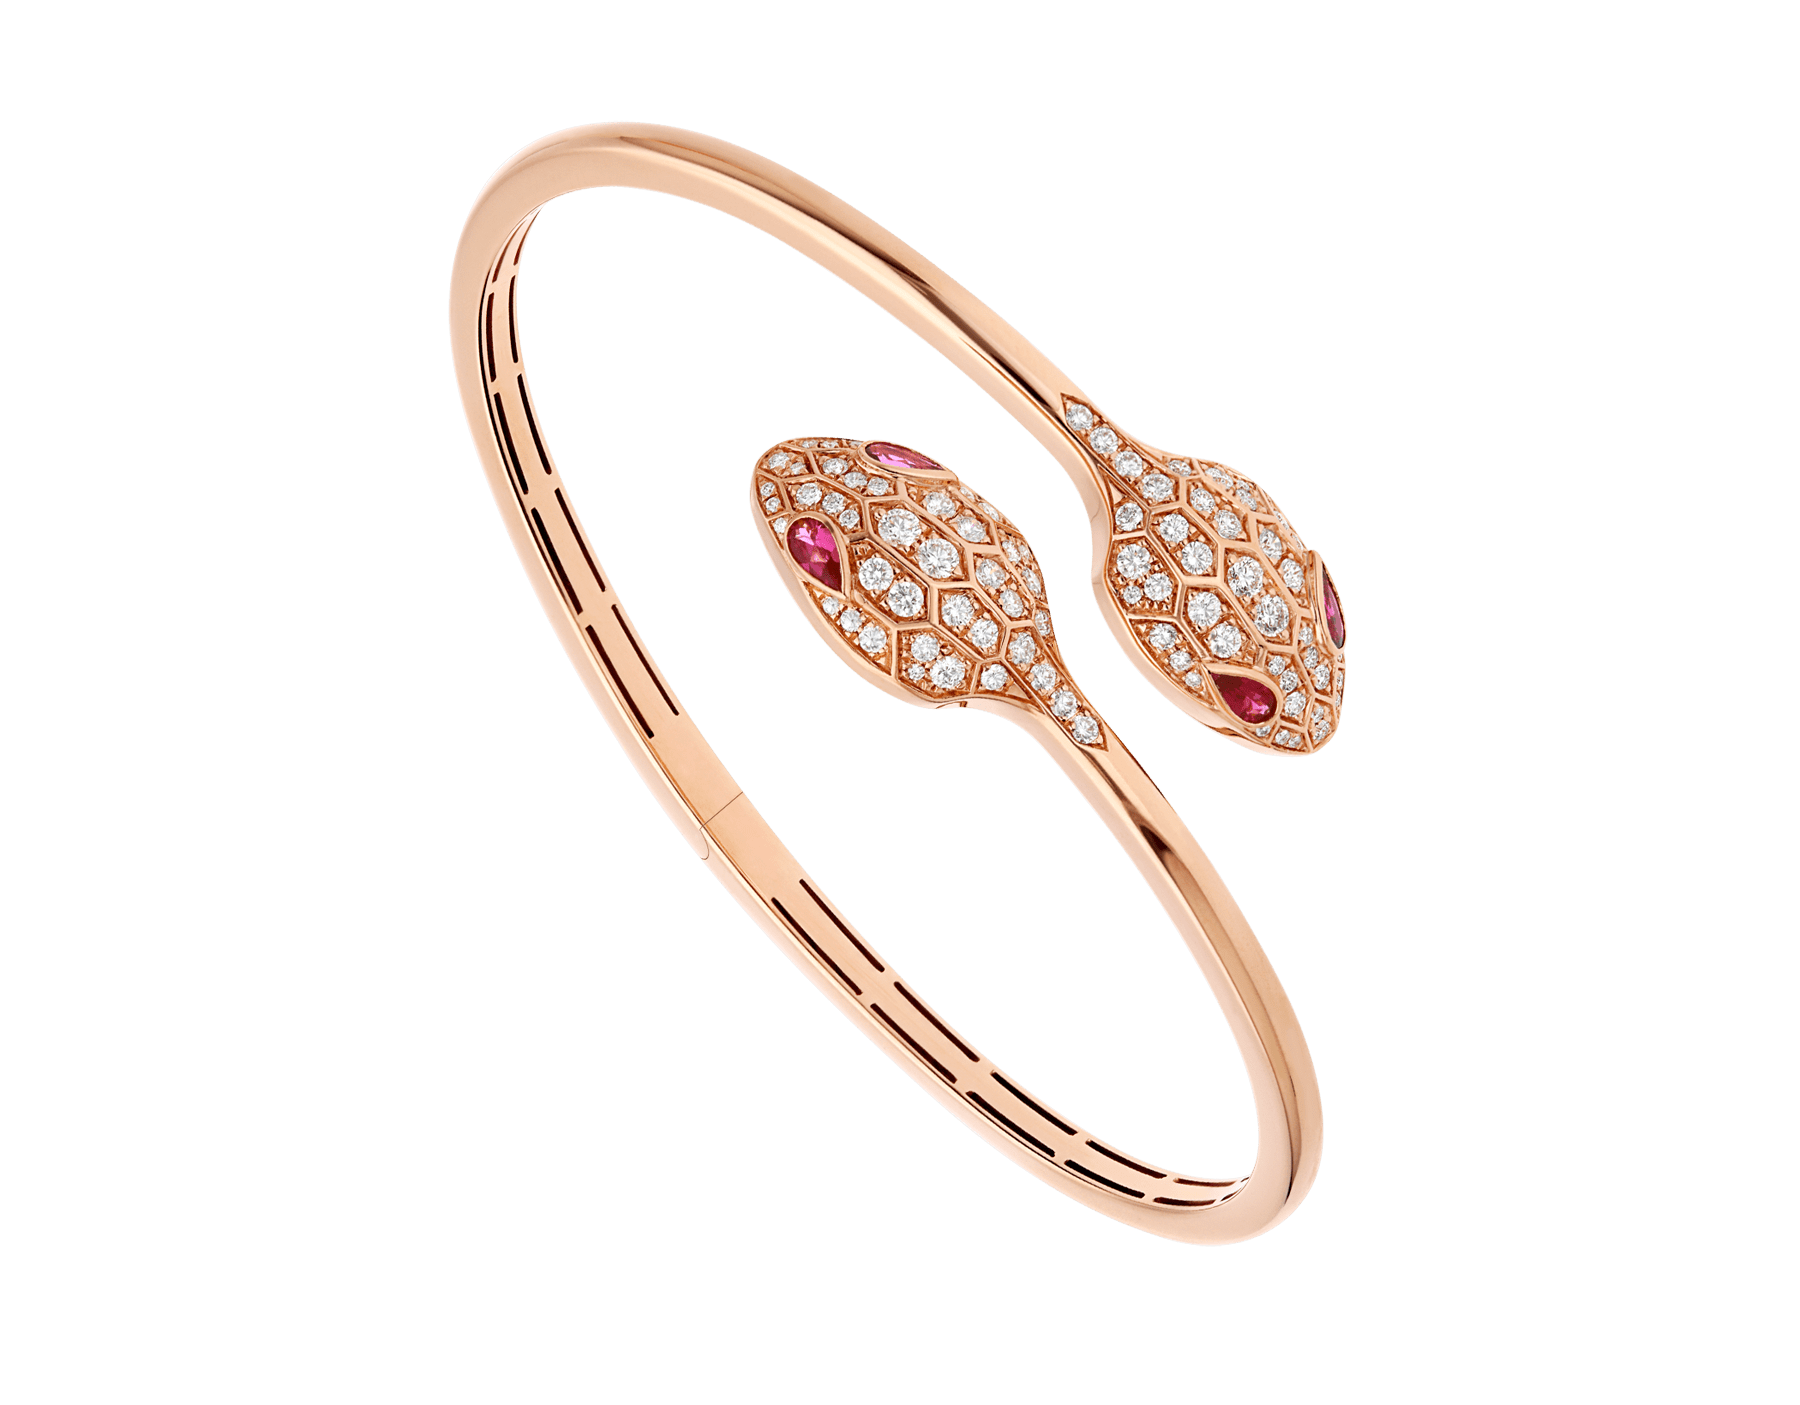 Bracelet Serpenti en or rose 18 K avec yeux en rubellite (0,45 ct) et pavé diamants (1,09 ct) BR858550 image 1